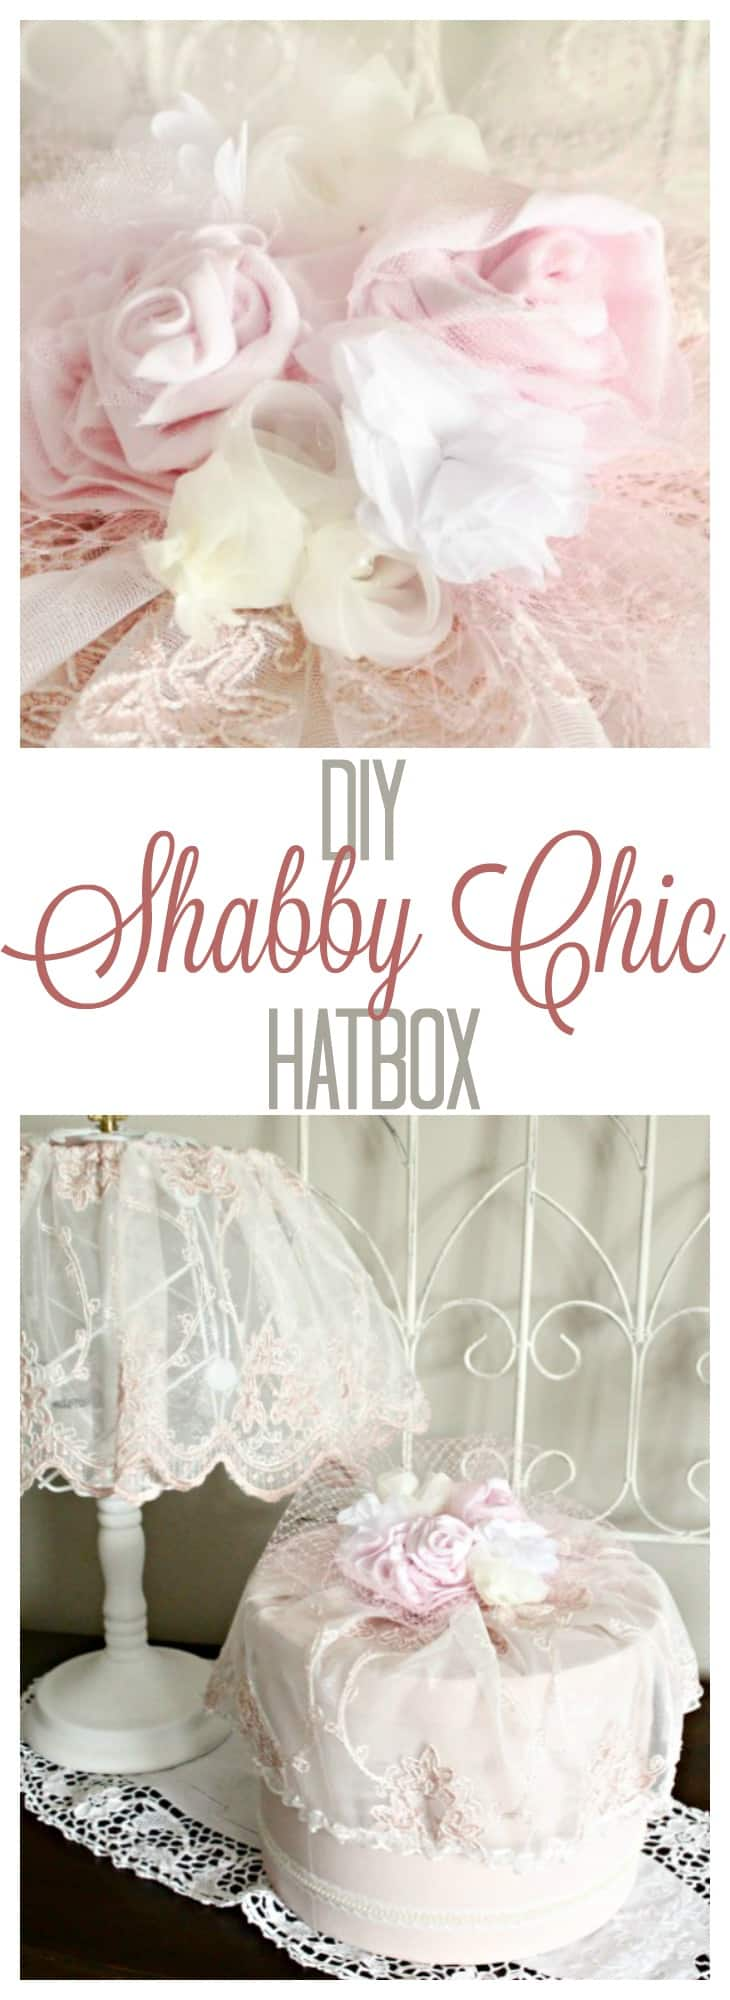 Diy hatbox with vintage shabby chic style for Lampe style shabby chic